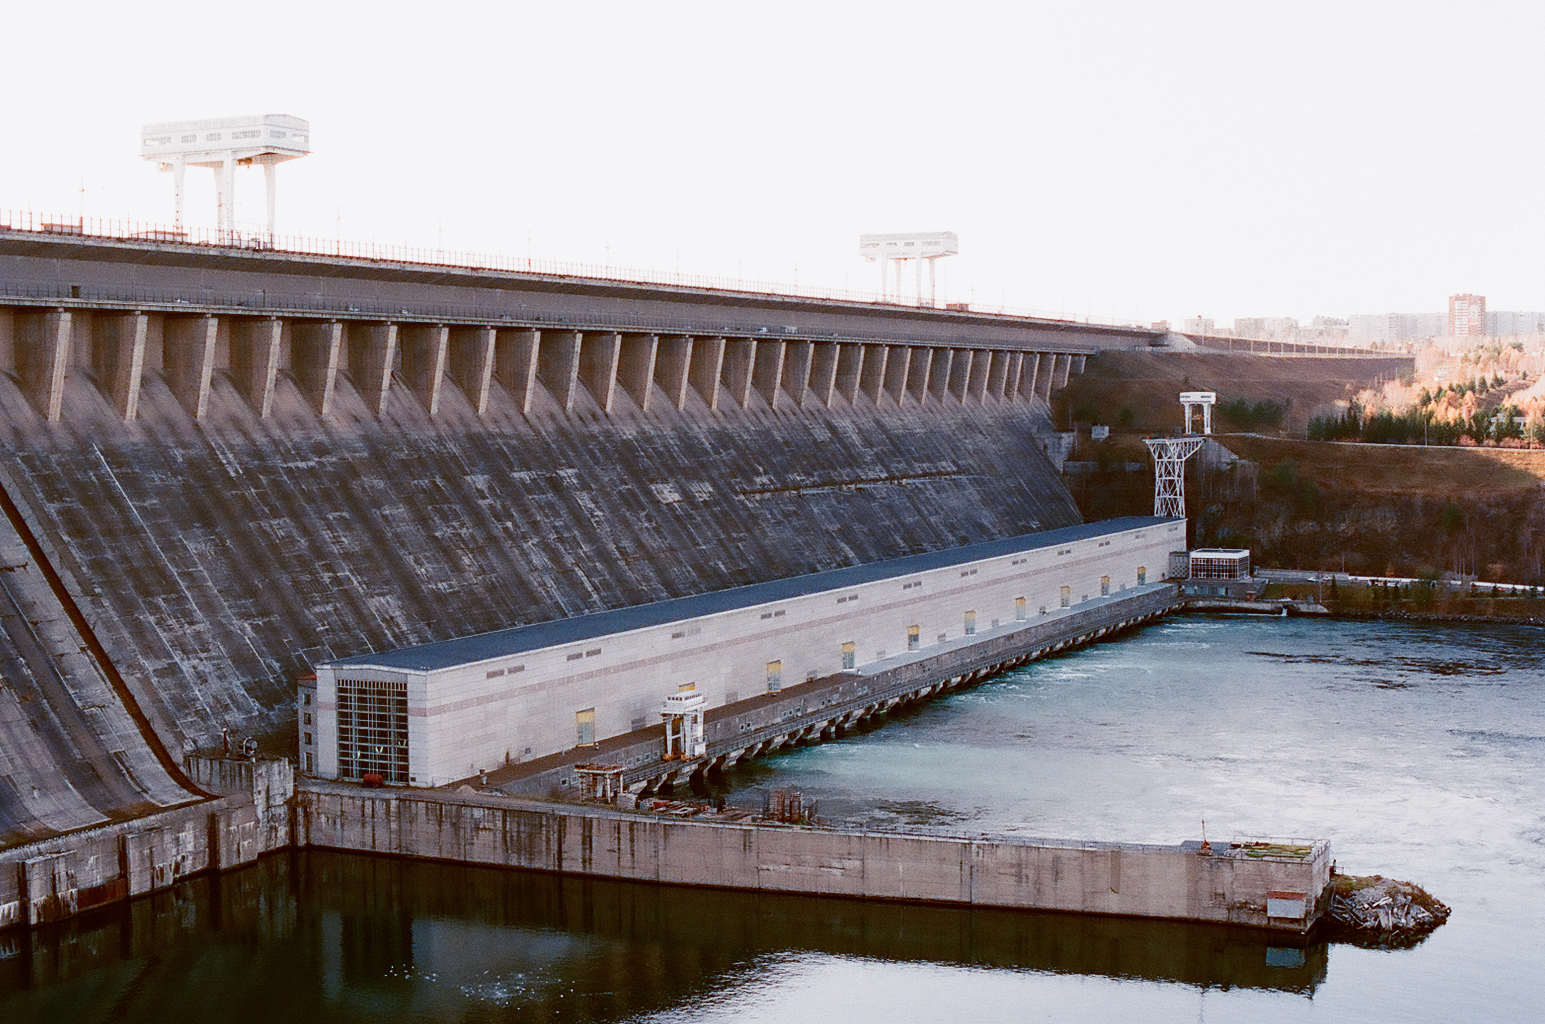 List Of Conventional Hydroelectric Power Stations Wikipedia 1970 Monte Carlo Wiring Diagram Image A Large Concrete Structure That Looks Kind Old And Unused With Pier